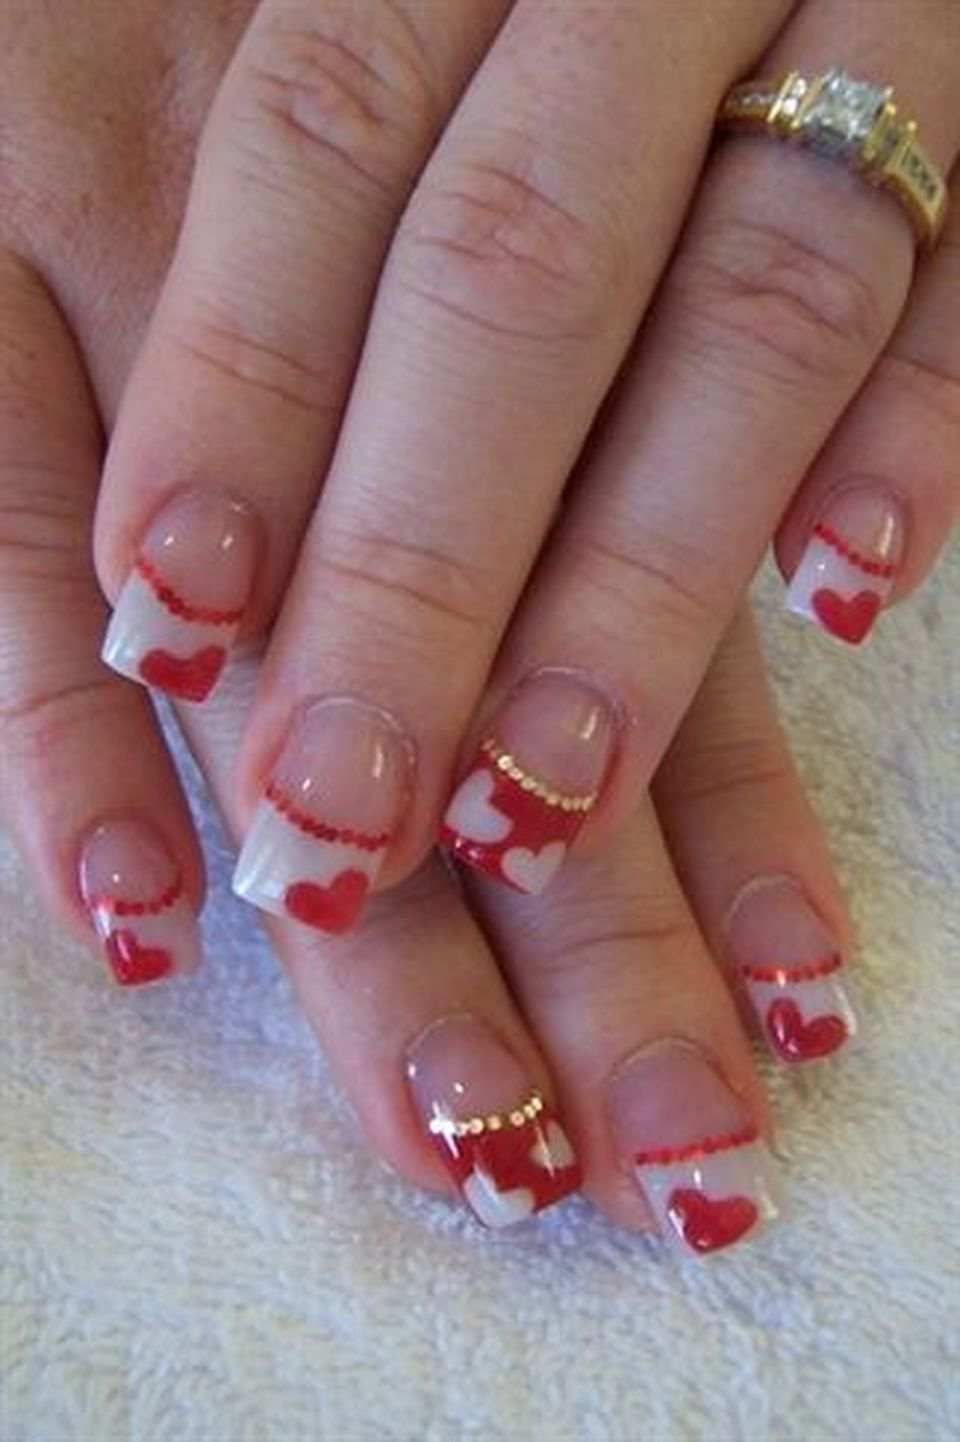 acrylic nails good for kids photo - 1